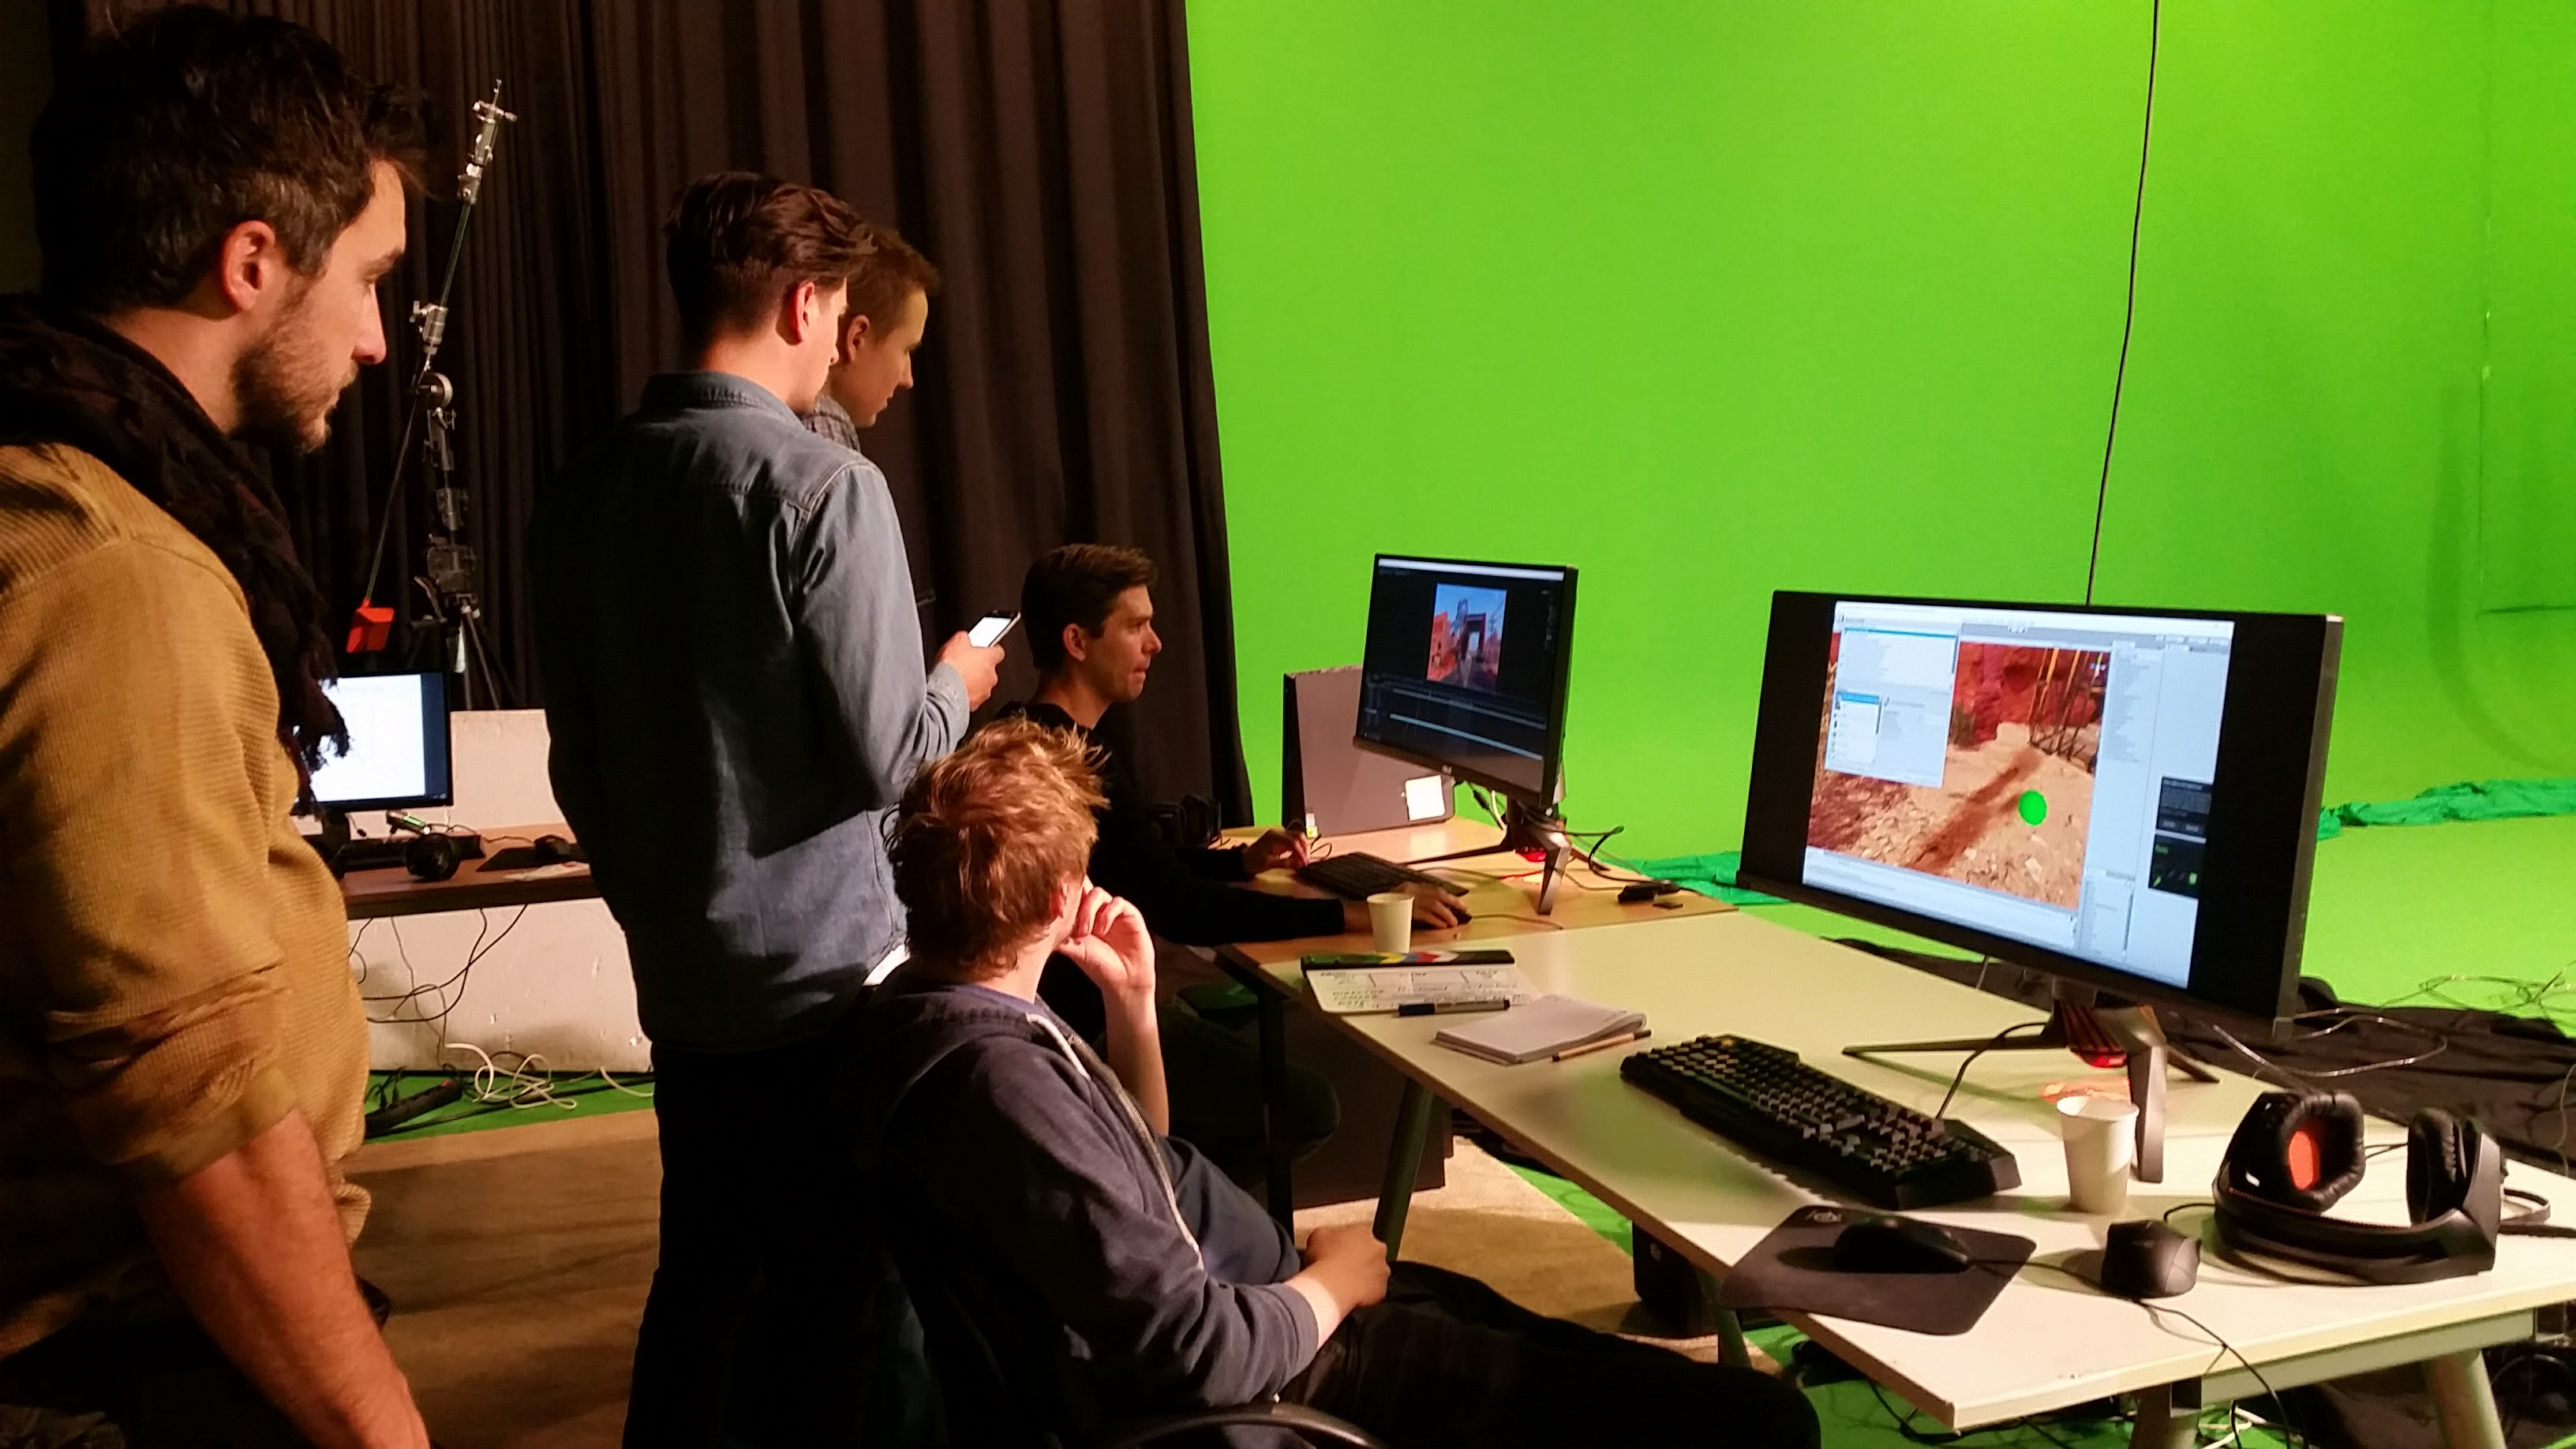 greenscreen studio postproduction